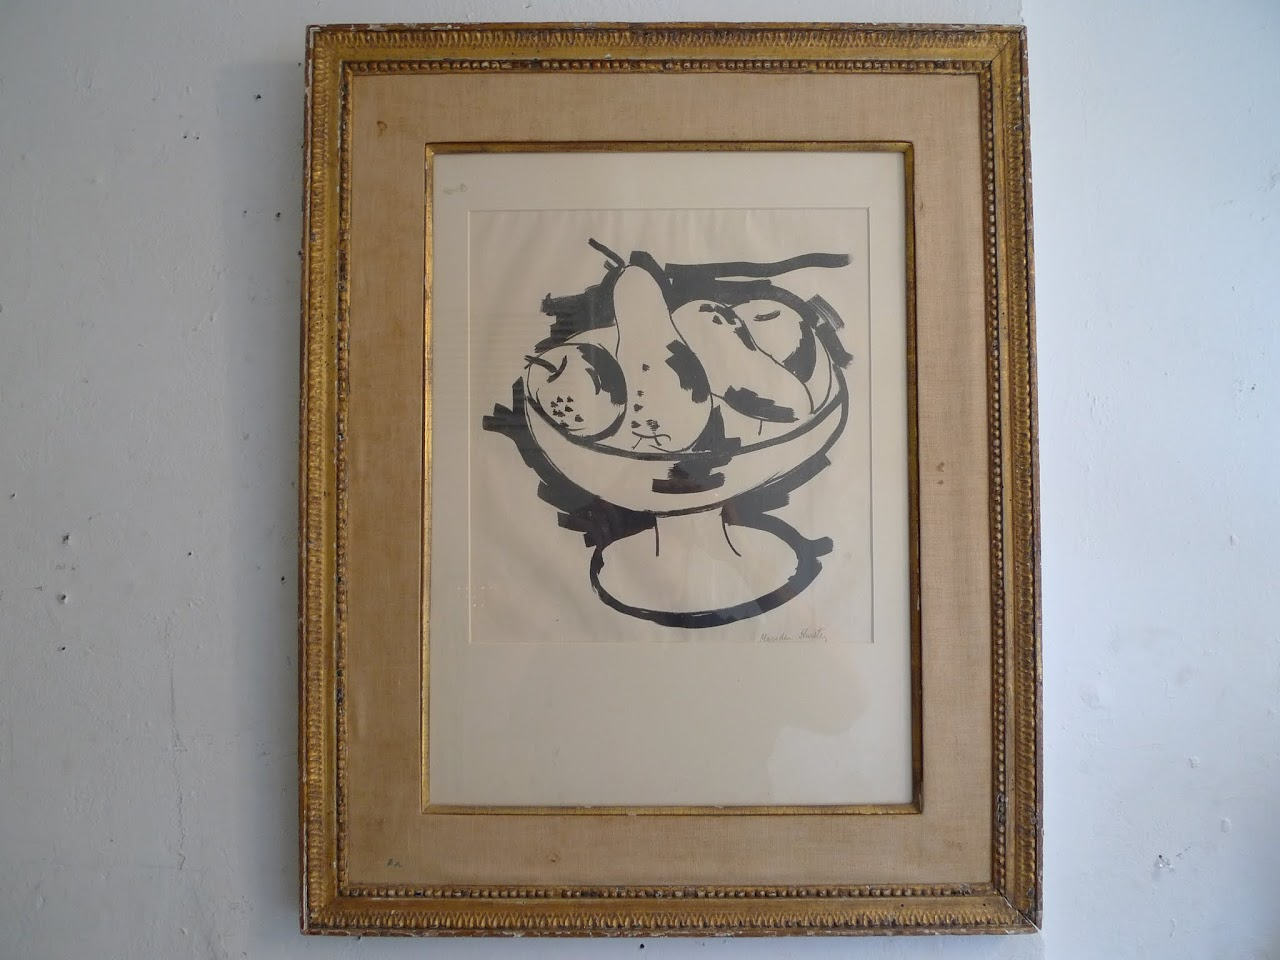 Marsden Hartley Signed Bowl of Fruit Lithograph